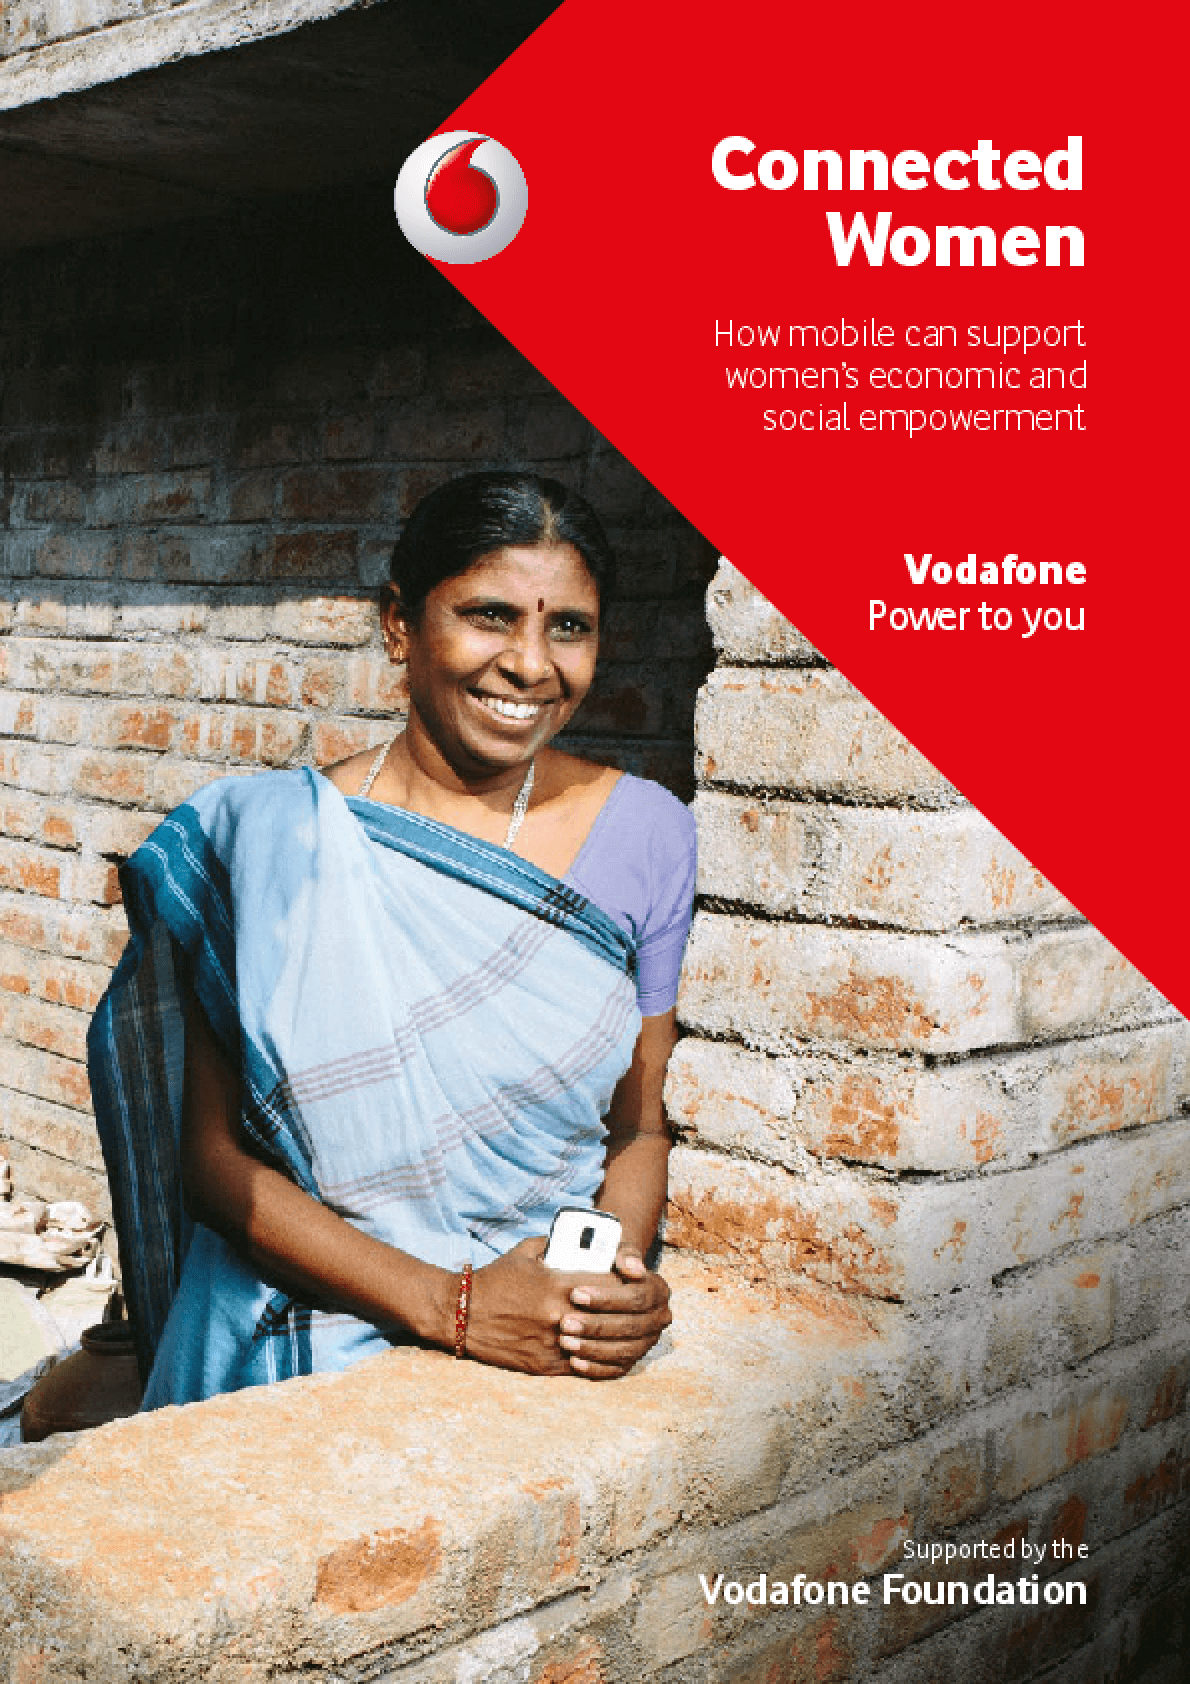 Connected Women: How Mobile Can Support Women's Economic and Social Empowerment